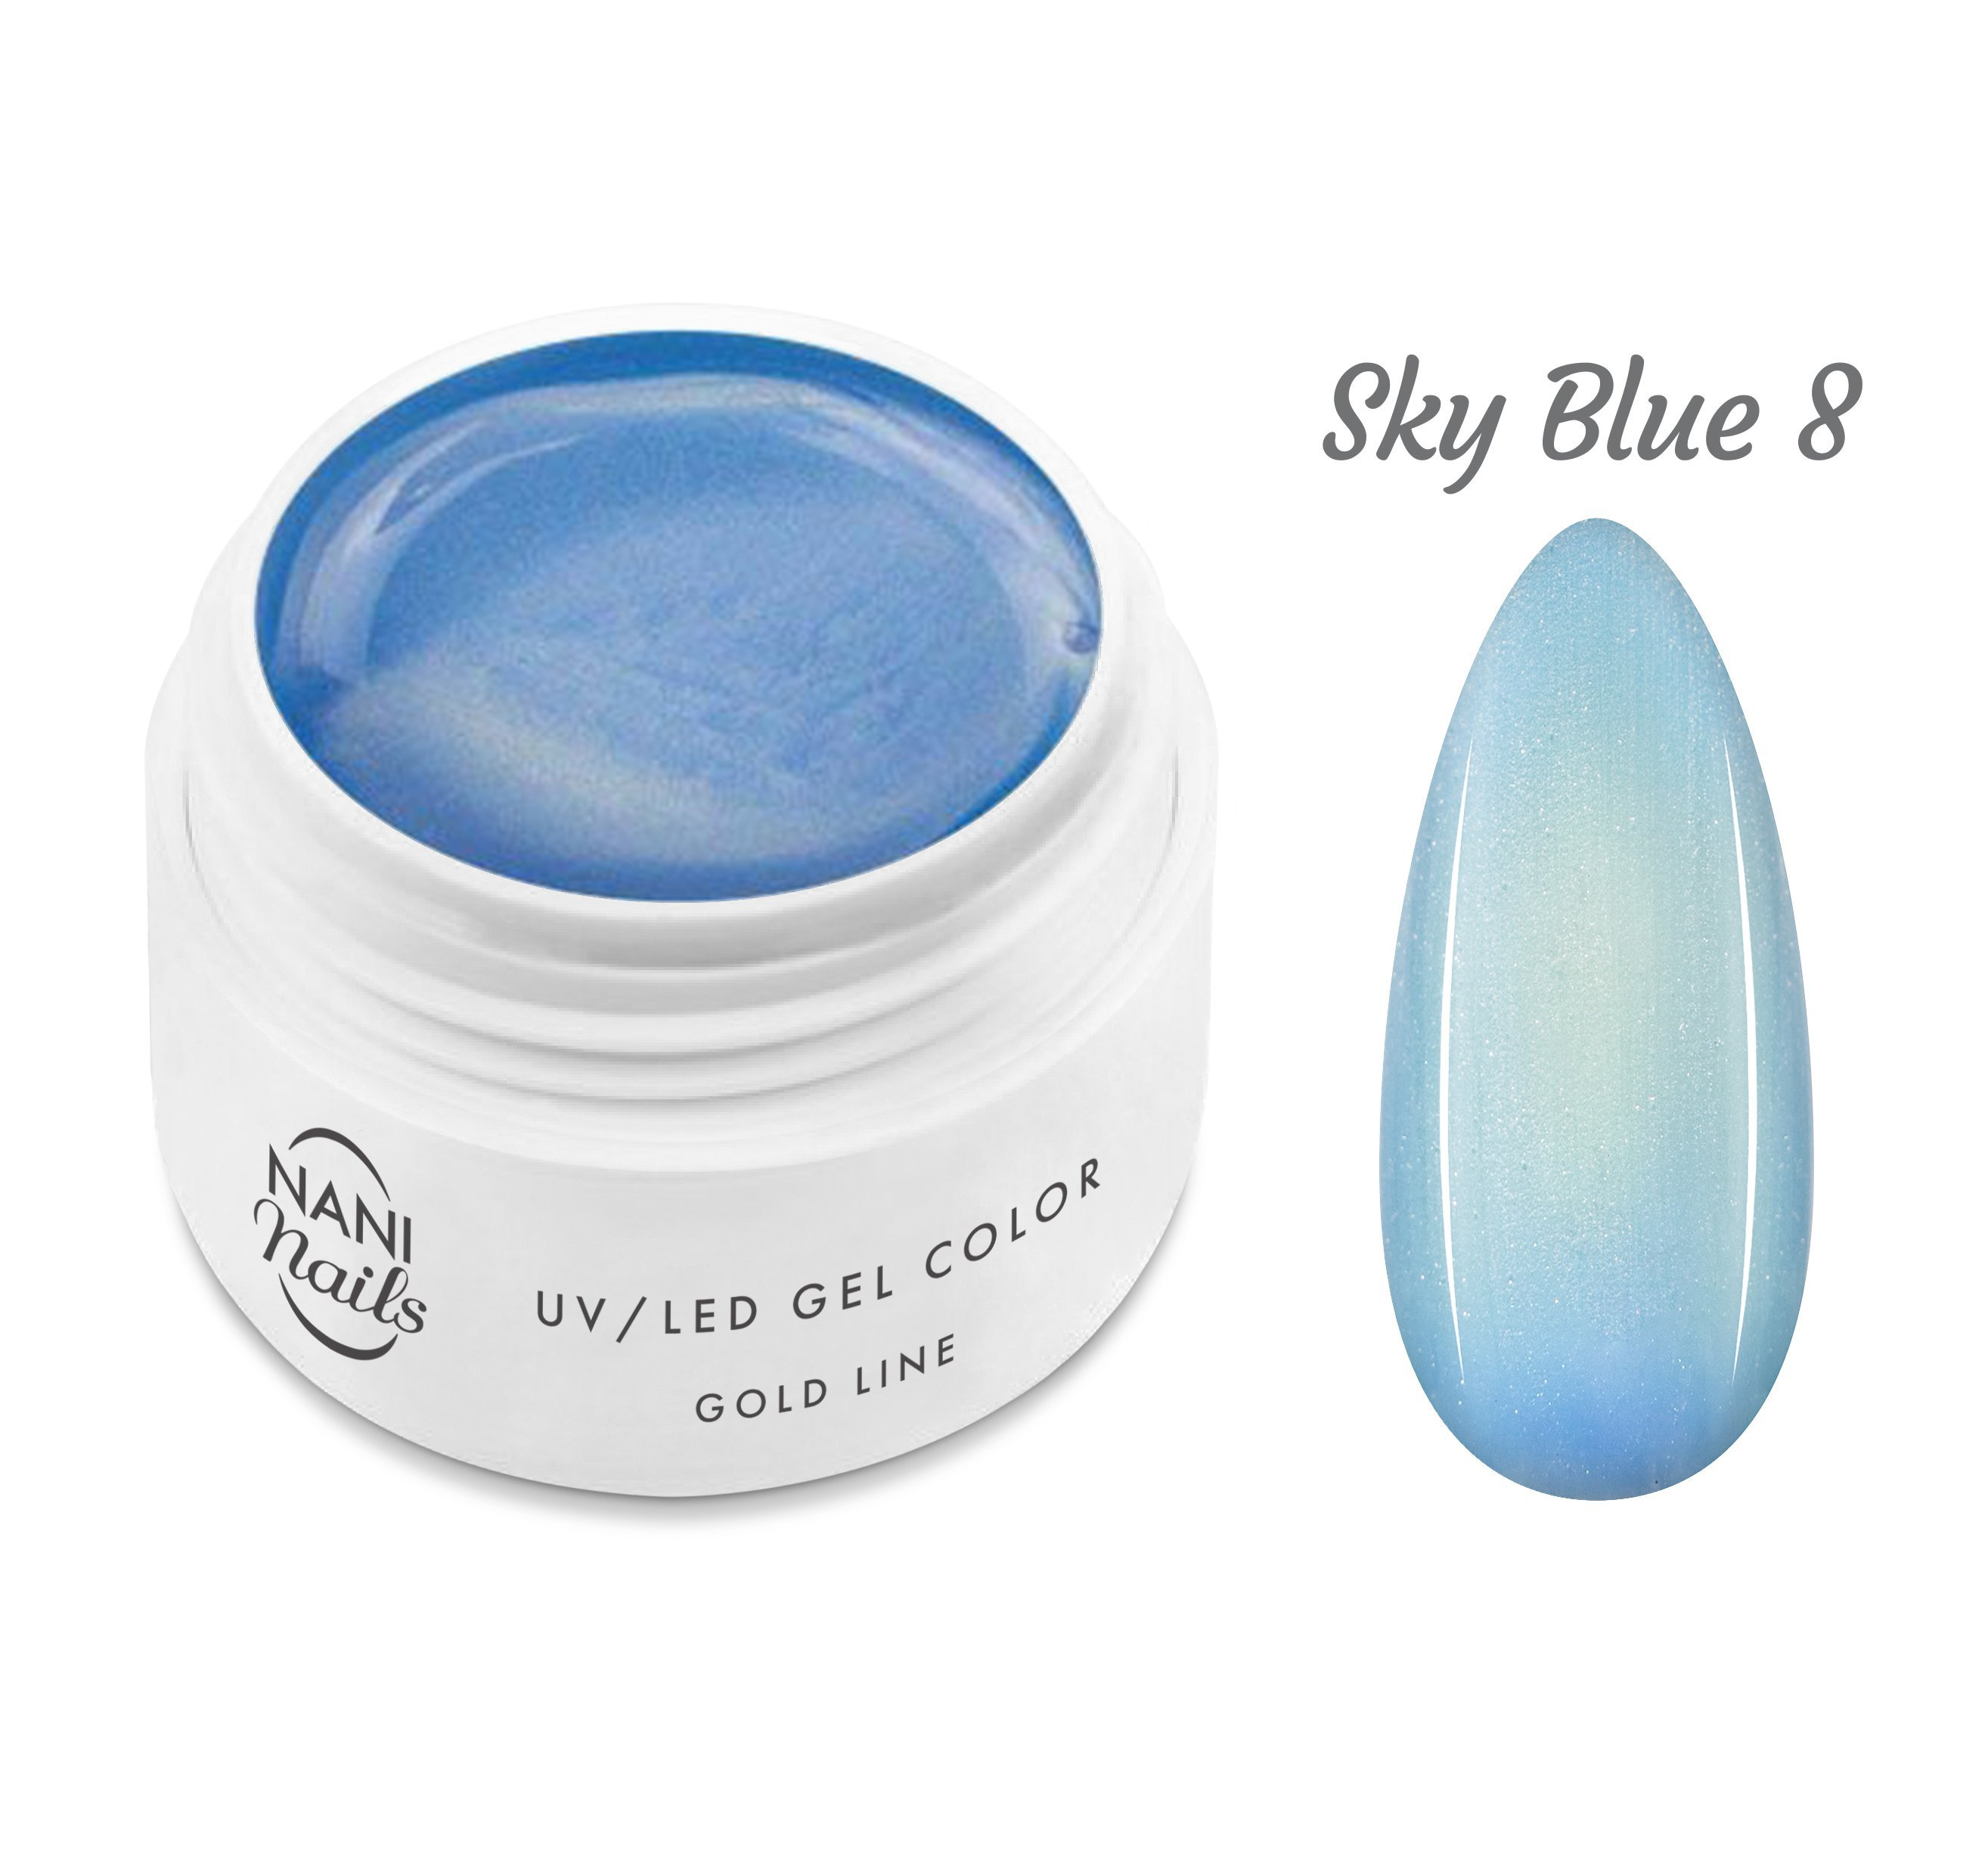 NANI UV gél Gold Line 5 ml - Sky Blue